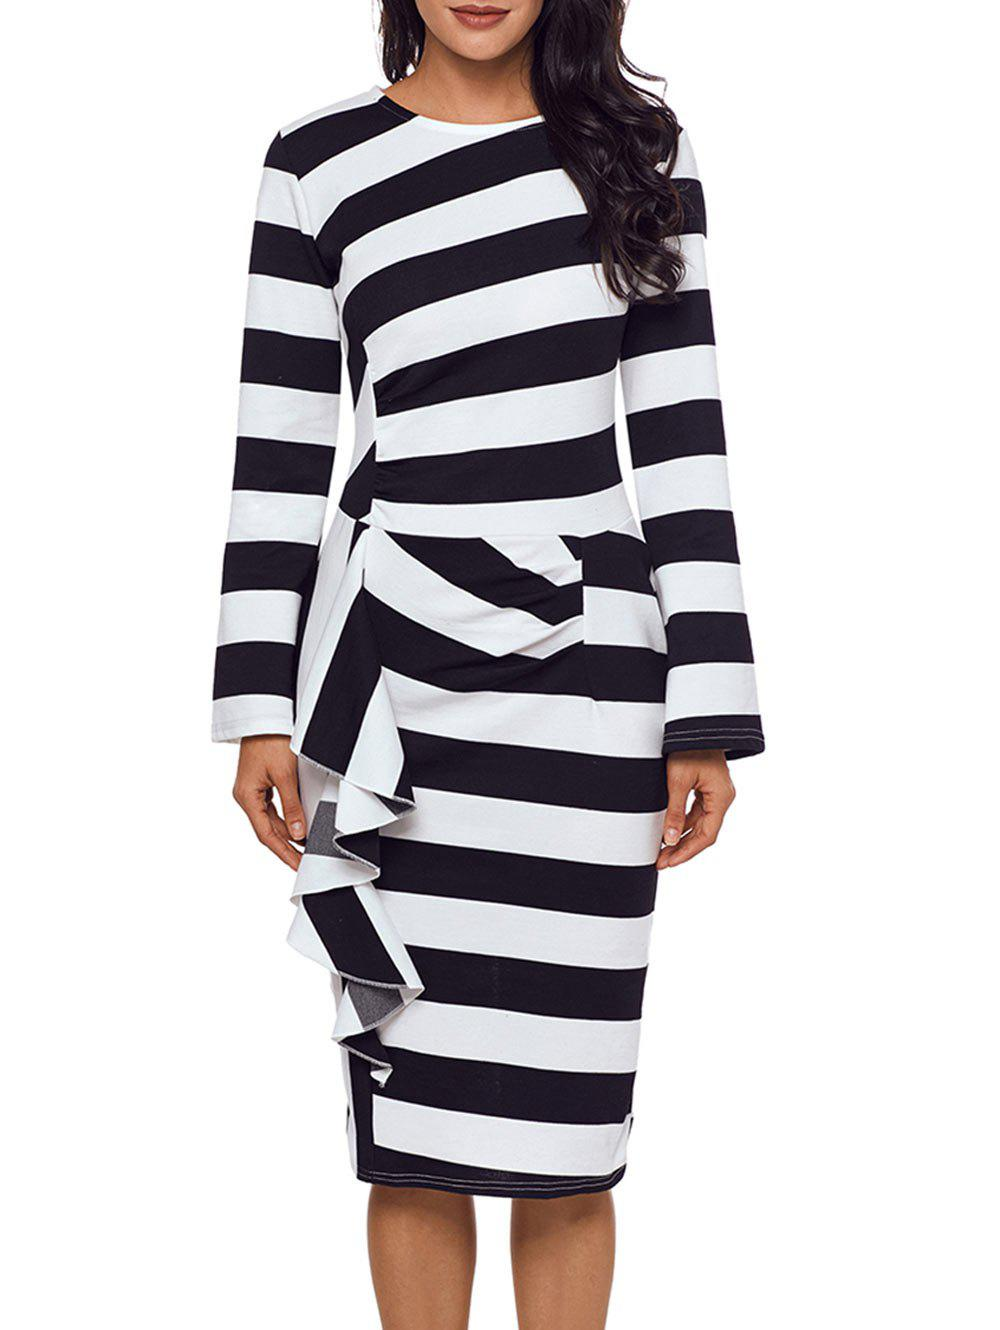 Stripe Ruffle Long Sleeve Dress - BLACK L